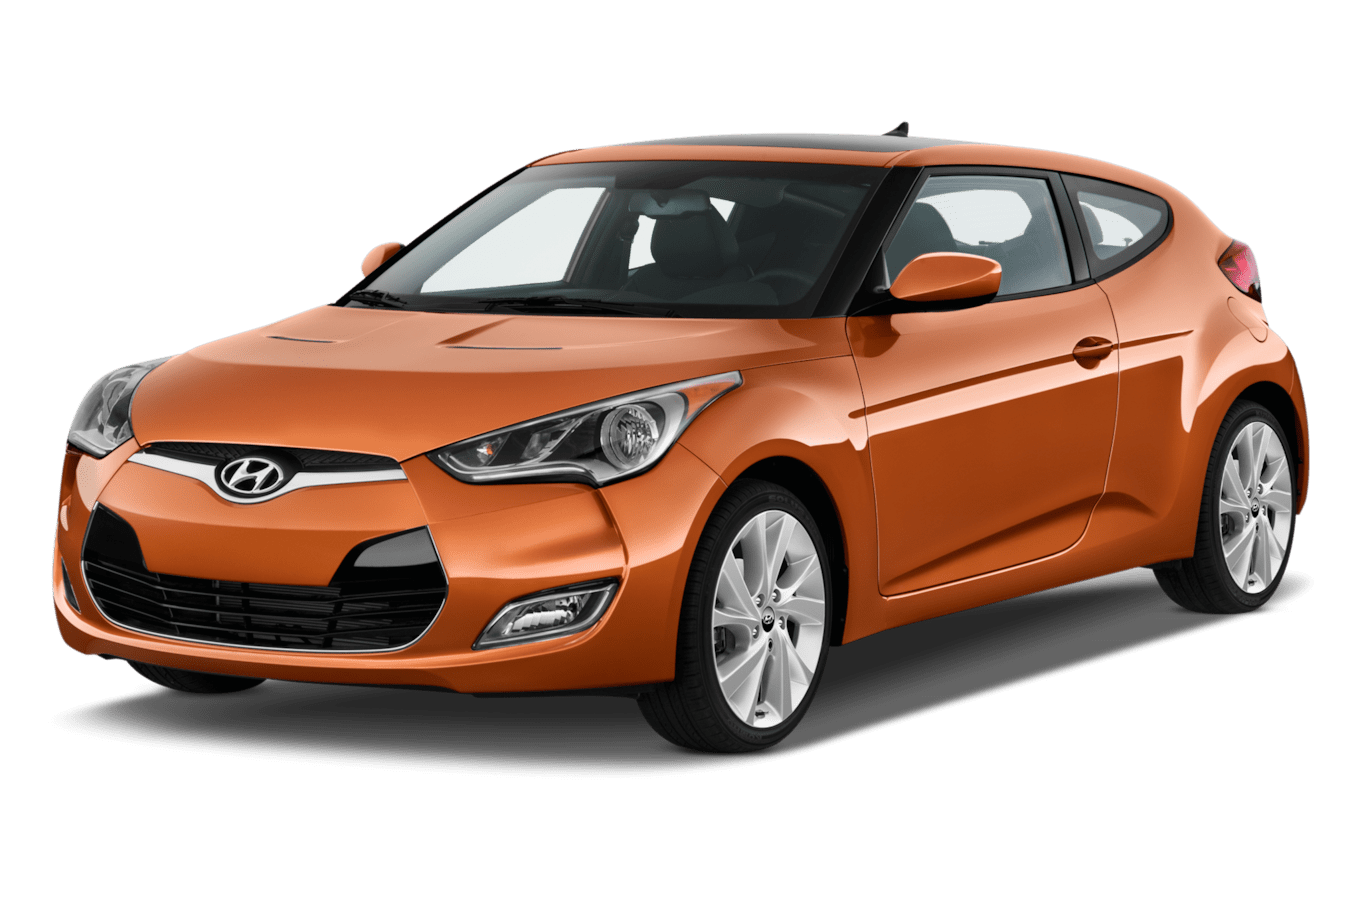 hight resolution of hyundai cars reviews u0026 prices latest hyundai models motortrend